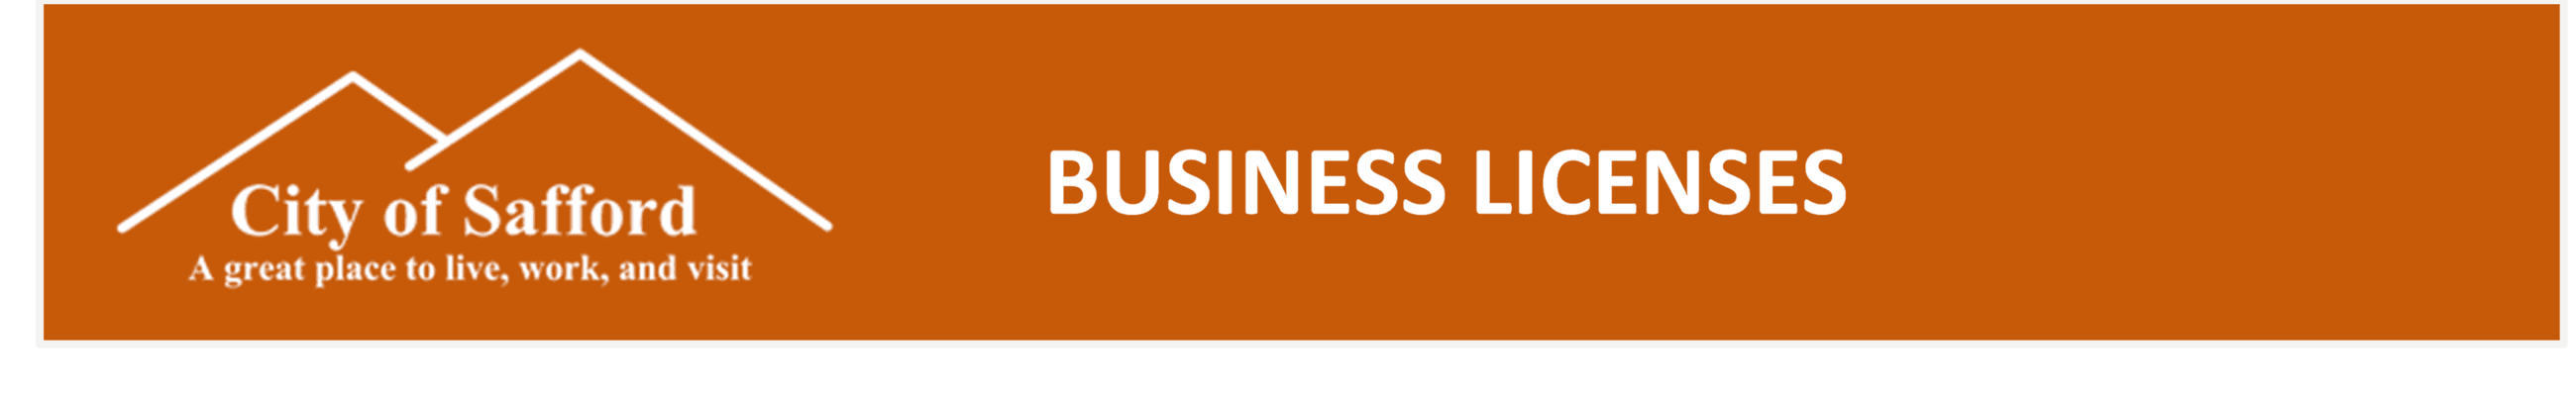 Business Licenses.docx